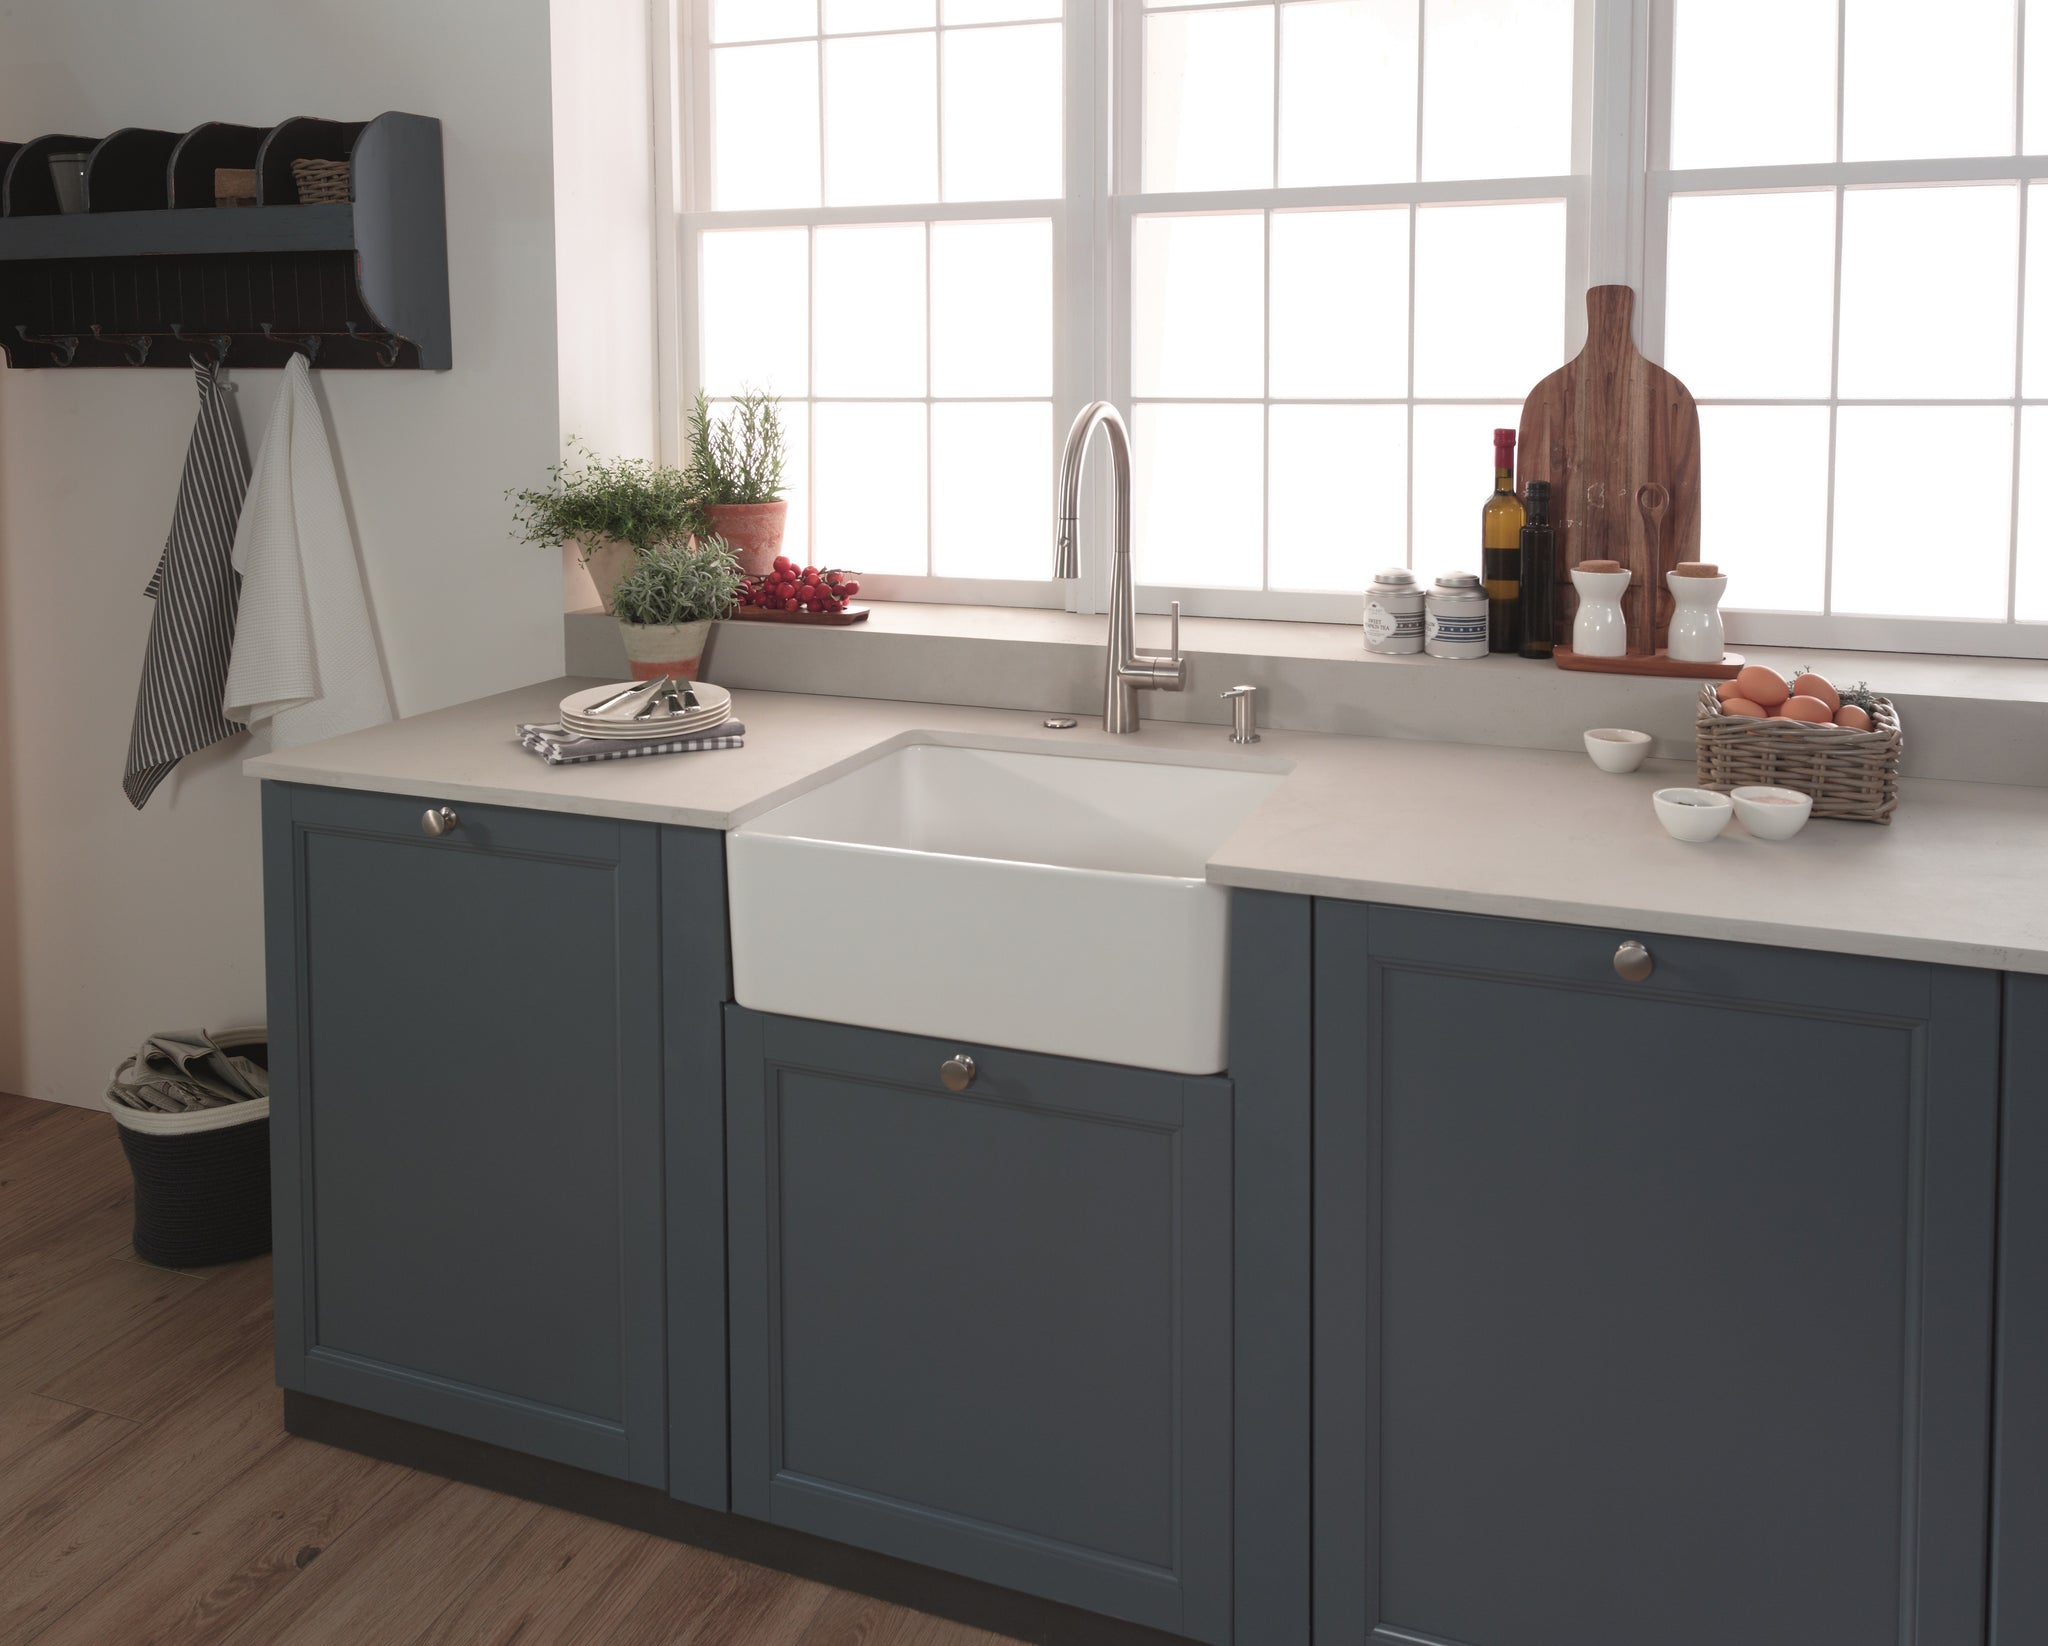 Franke manor house mhk110 20 fireclay 20 apron front sink in